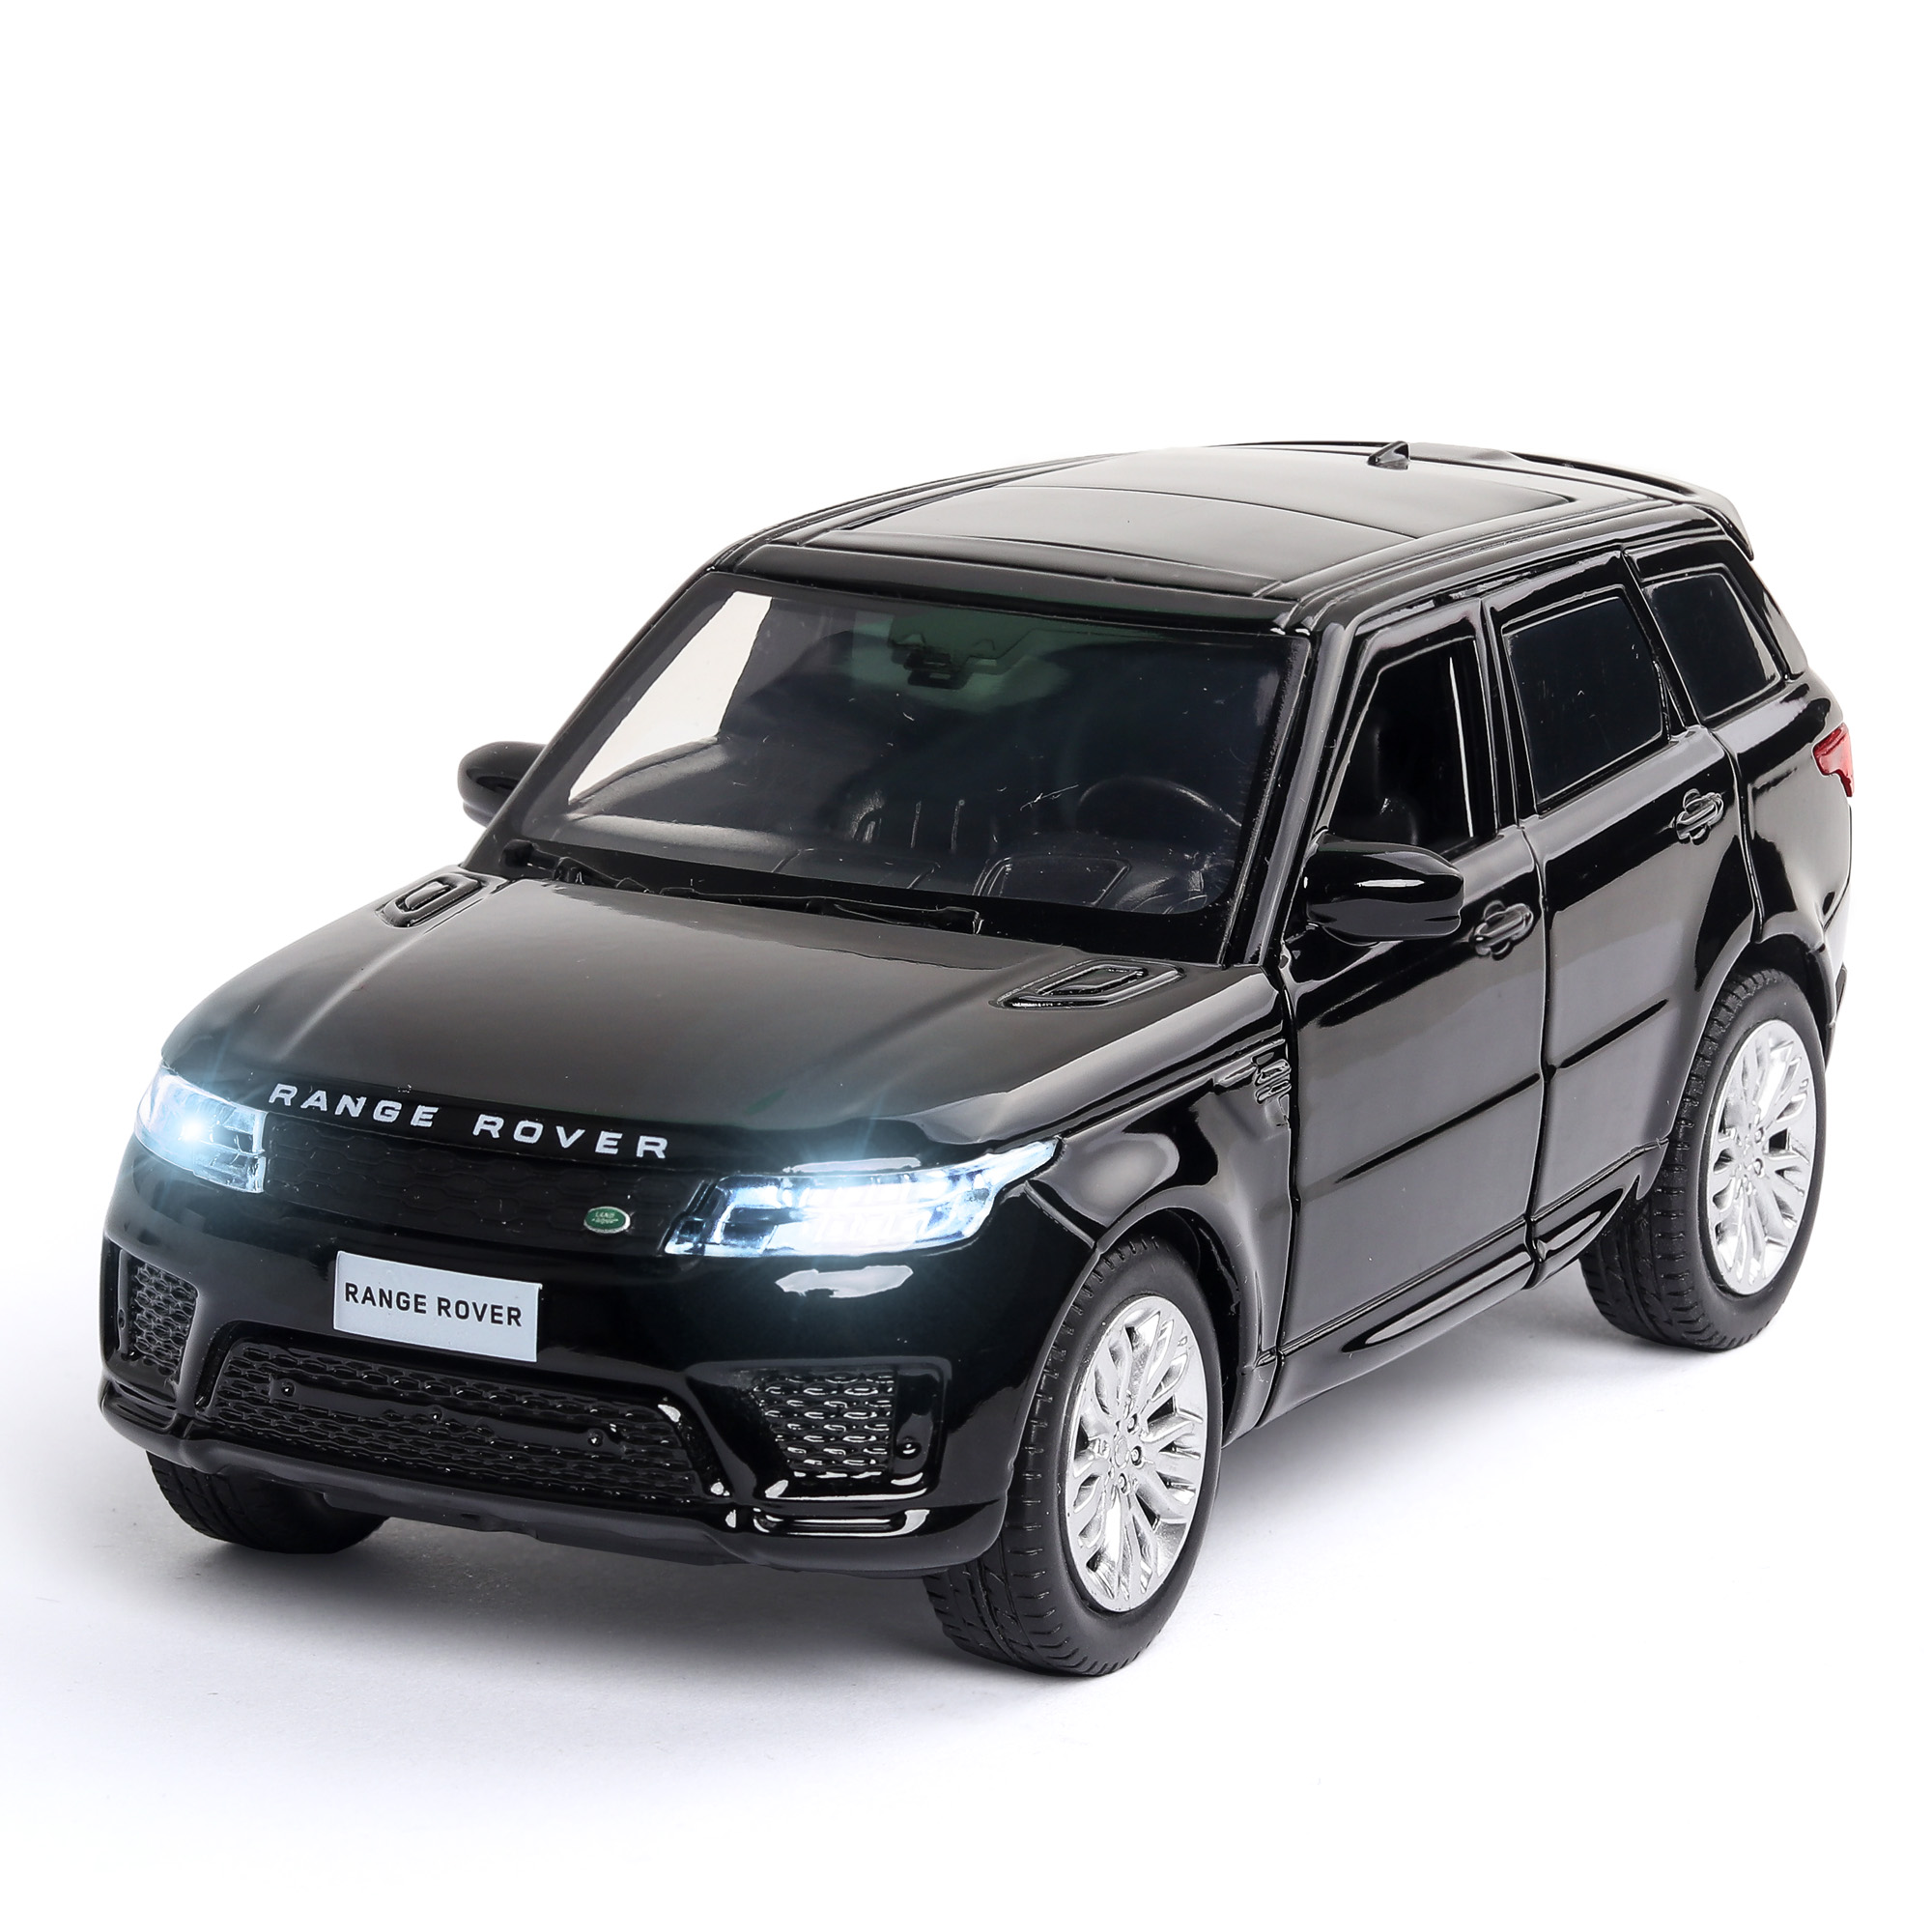 1/32 Diecast Car Model Lands Rover Range Rover Metal Toy Wheels Simulation Sound And Light Pull Back Car Collection Kids Gift